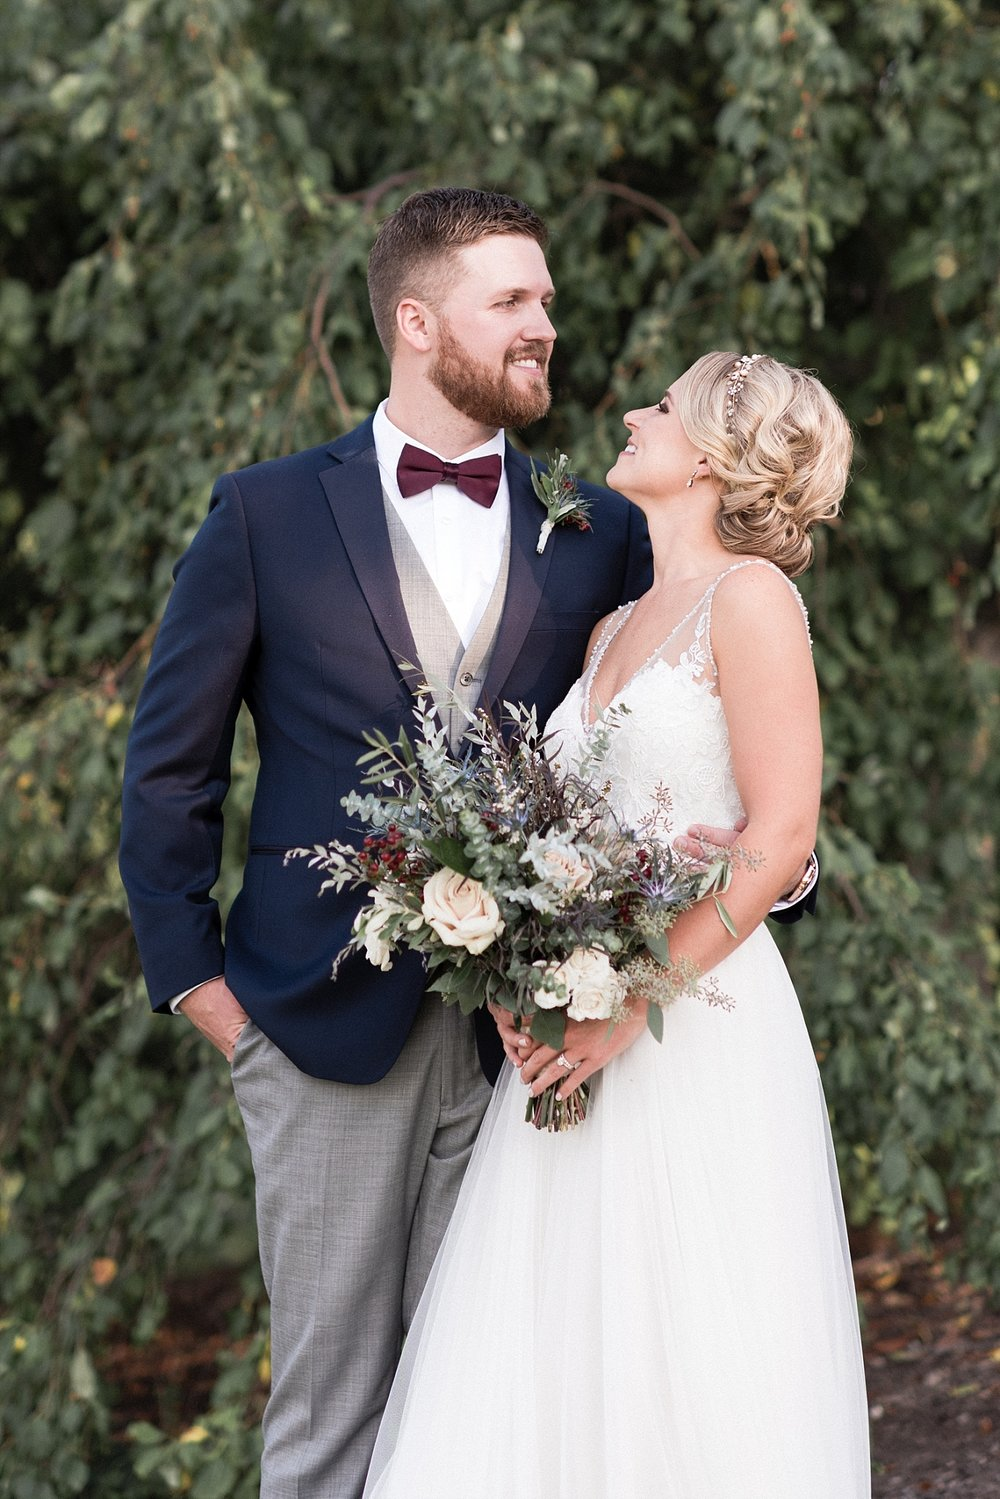 Bride groom wedding photography portrait bouquet